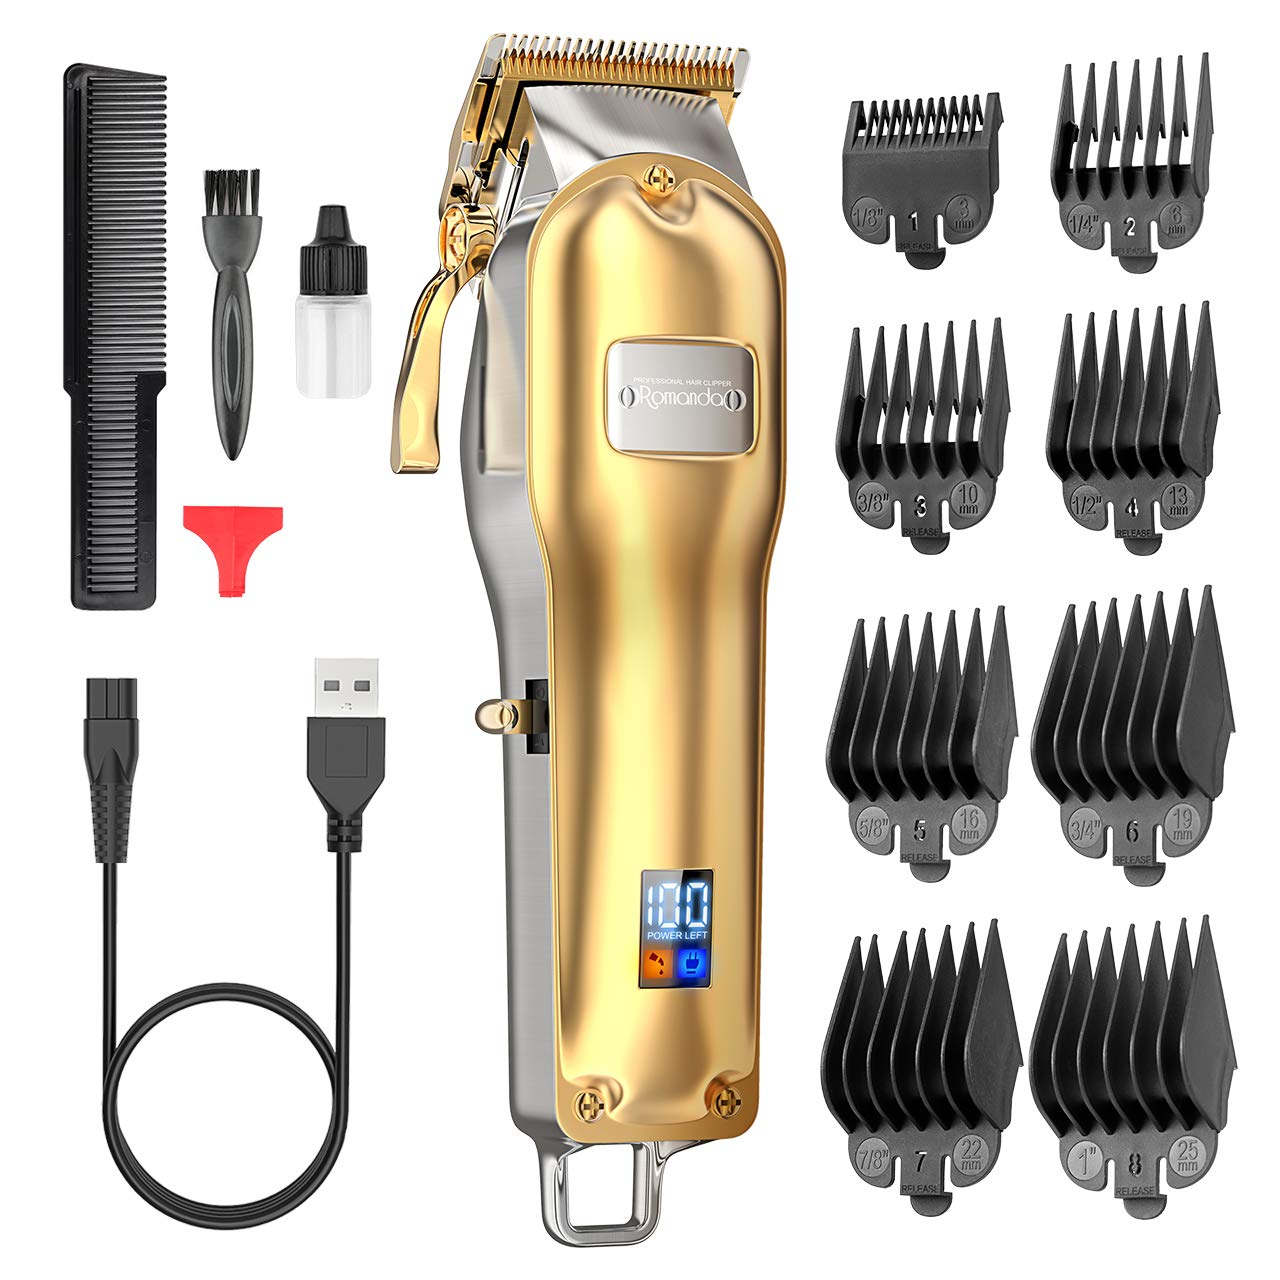 Hair Clippers for Men,Clippers for Hair Cutting Mens Hair Clippers Professional Kit Rechargeable Cordless Electric Haircut Kit with 2500 mAh LCD Display,8 Guide Combs for Men and Barbers